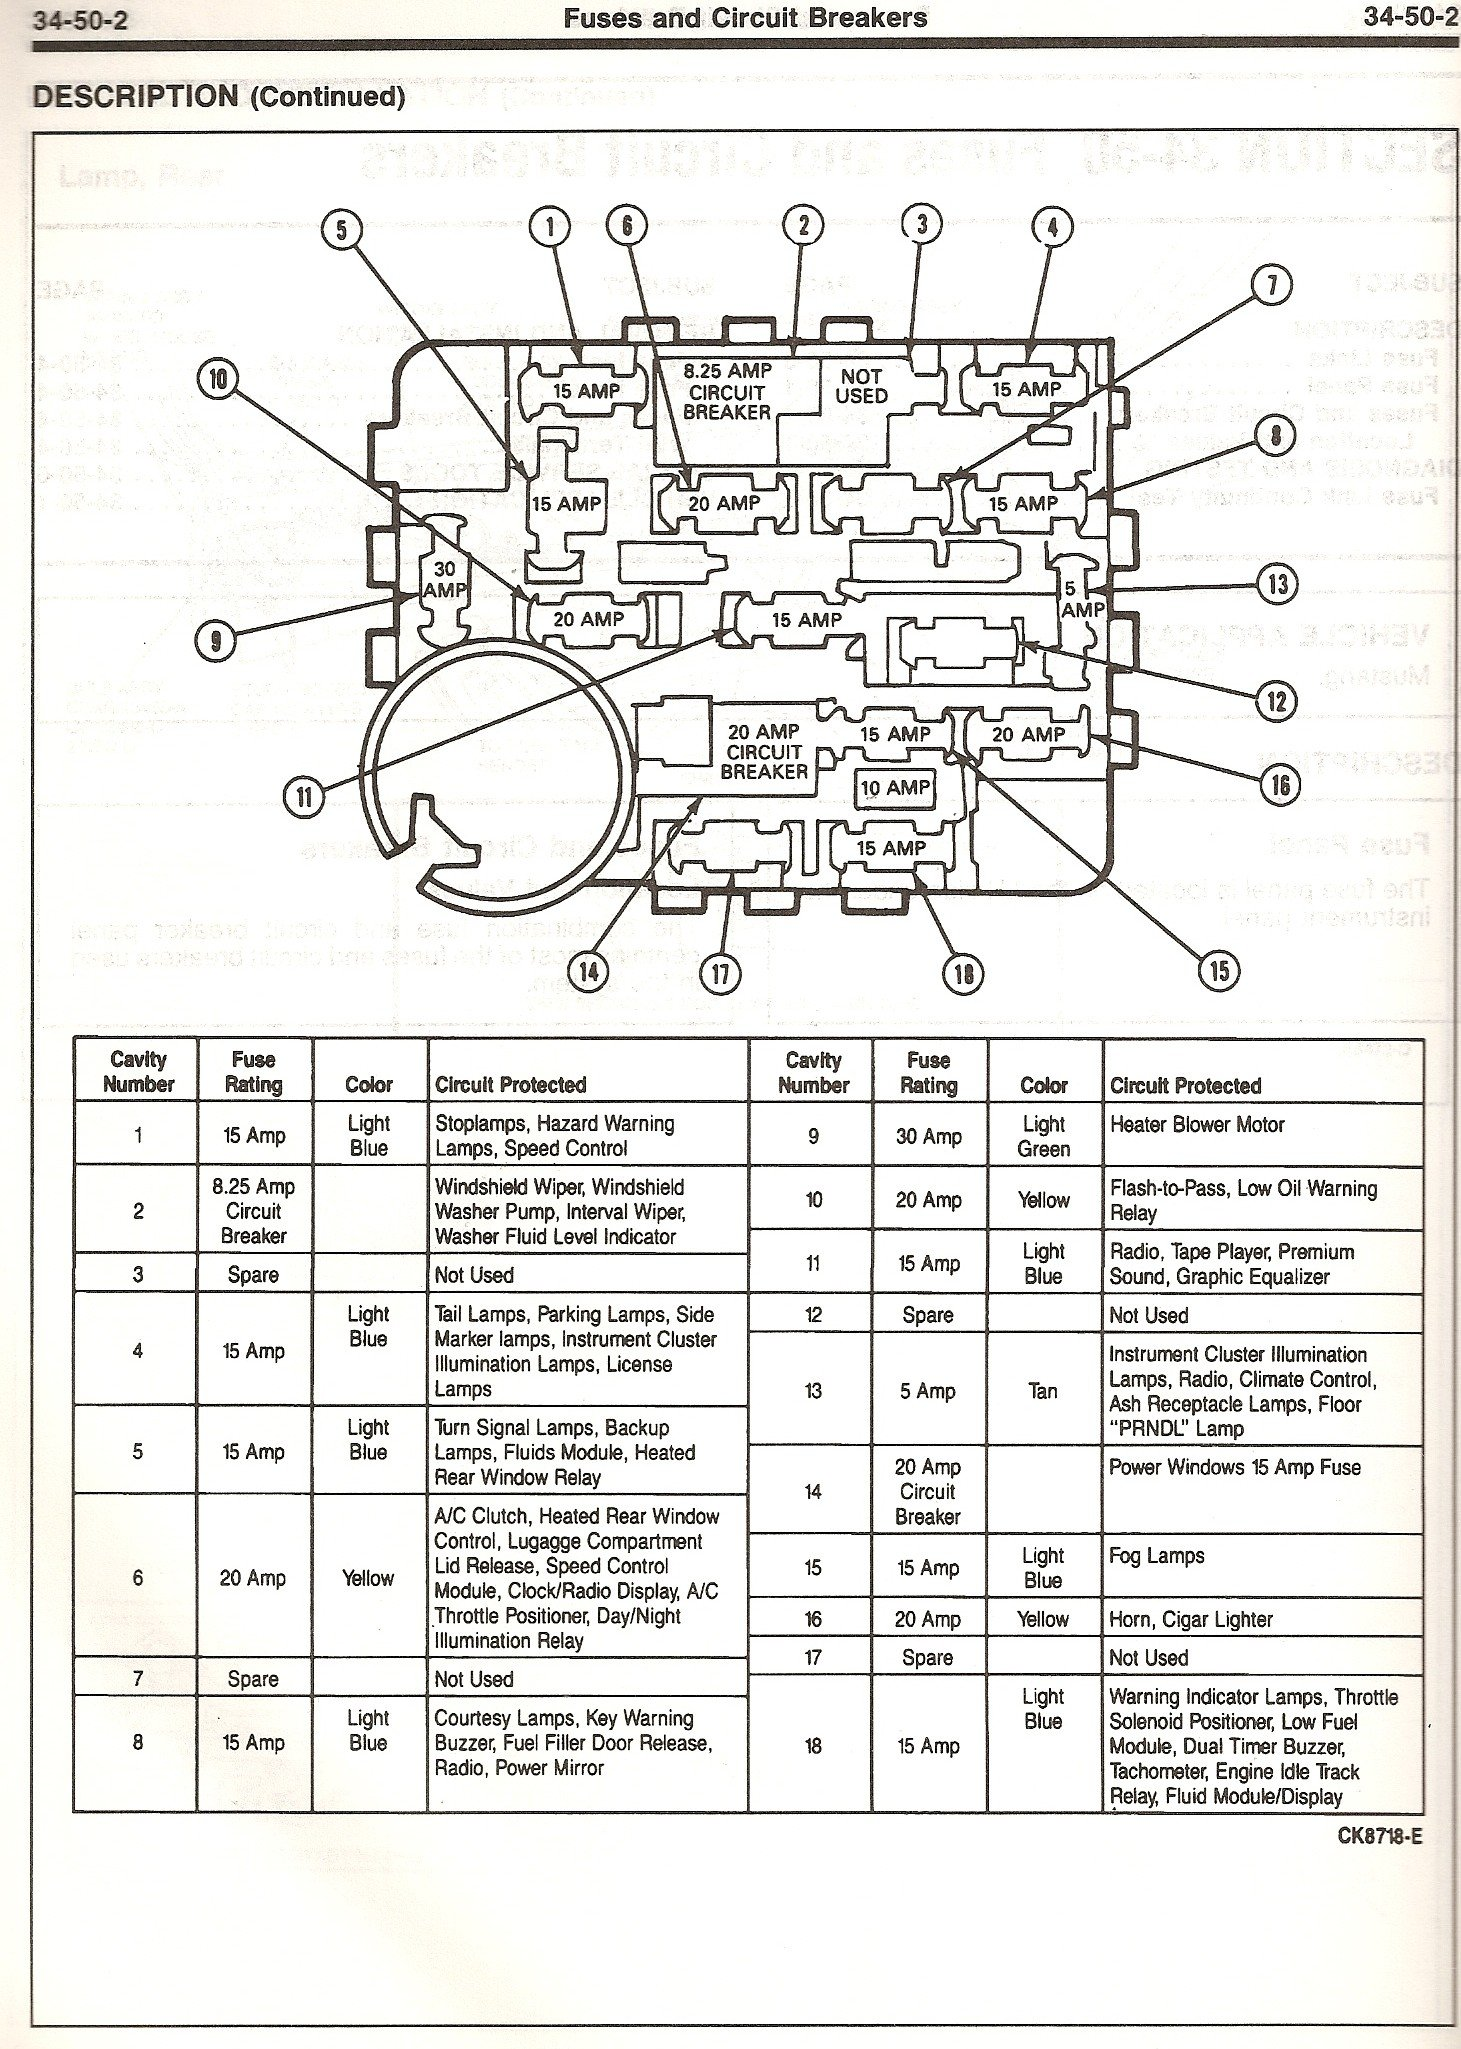 fuse box diagram for 2002 ford escape xlt